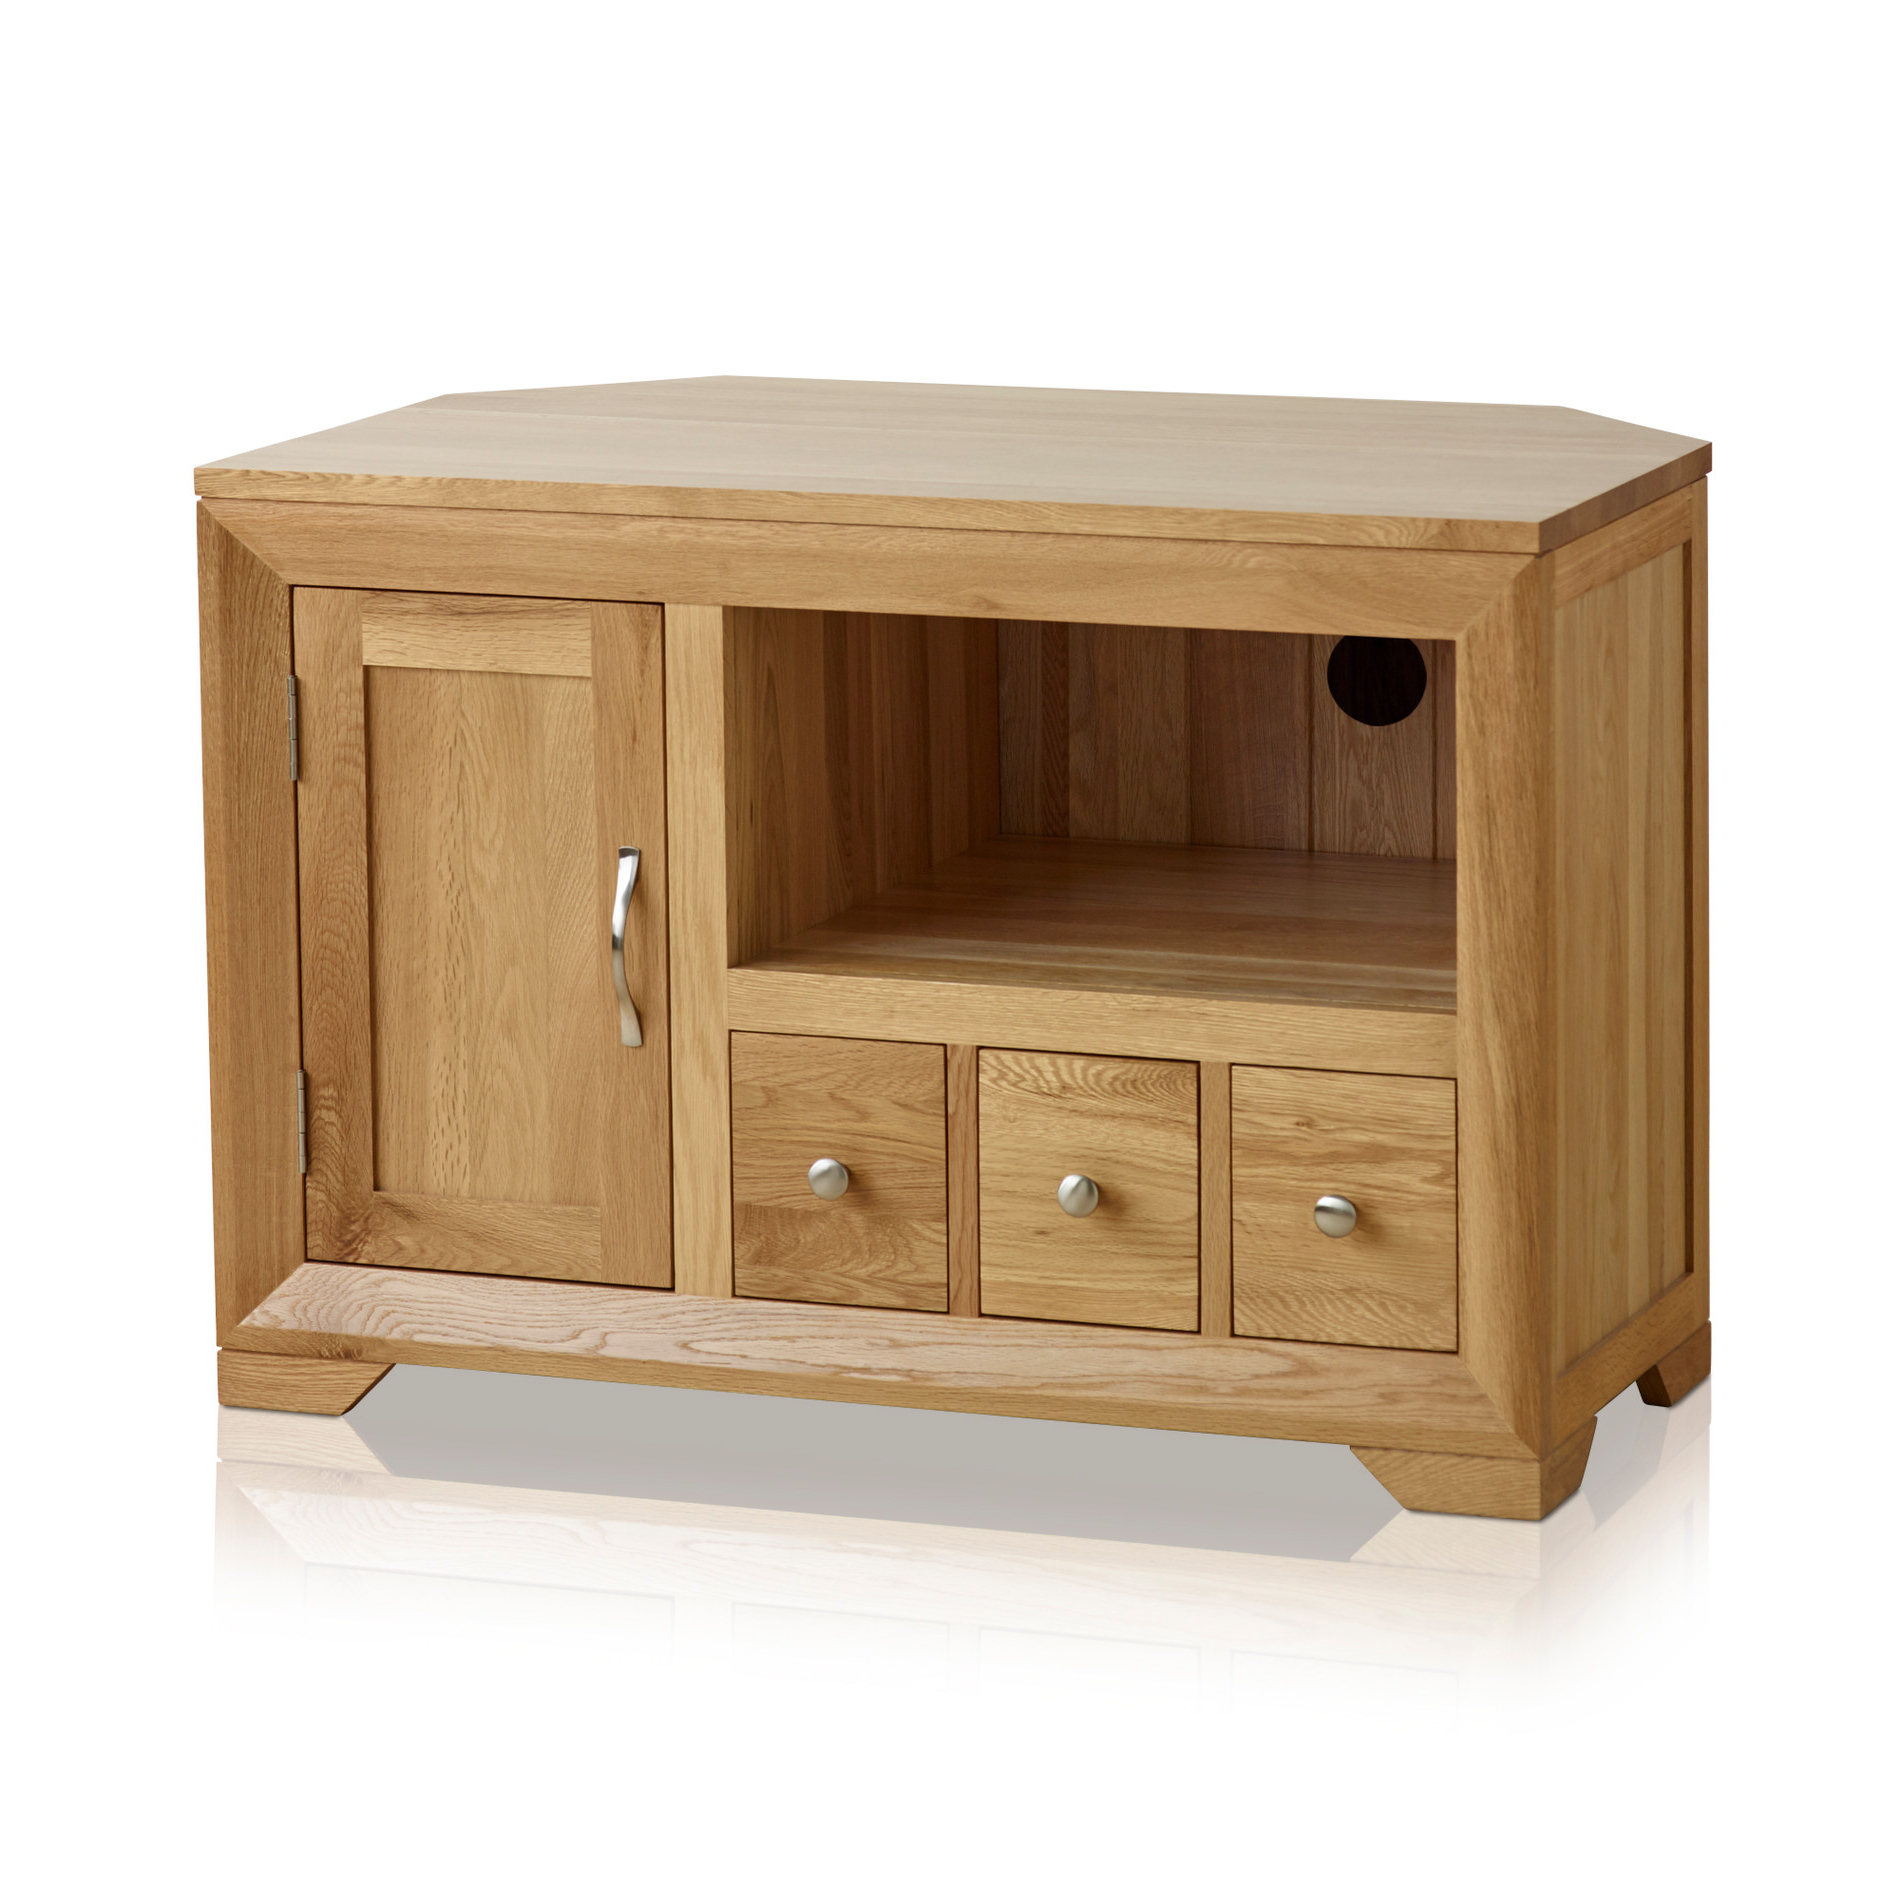 Oak Furniture Land In Corner Tv Cabinets (View 16 of 20)